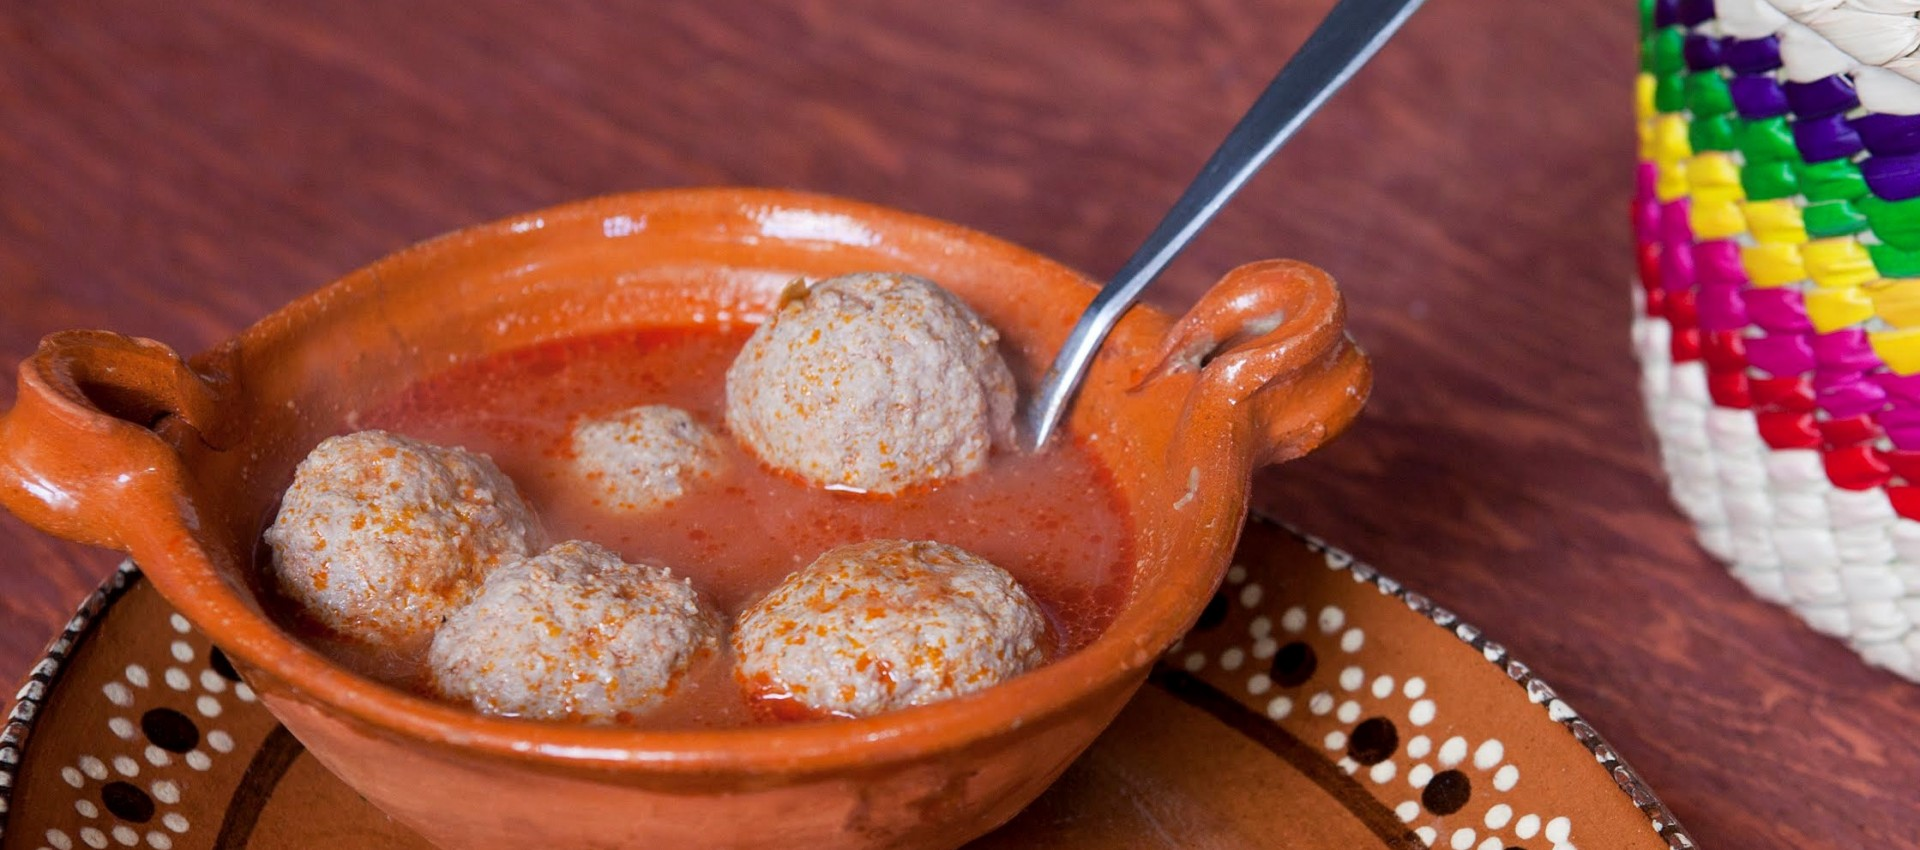 BEEF MEATBALLS IN SOUP Image